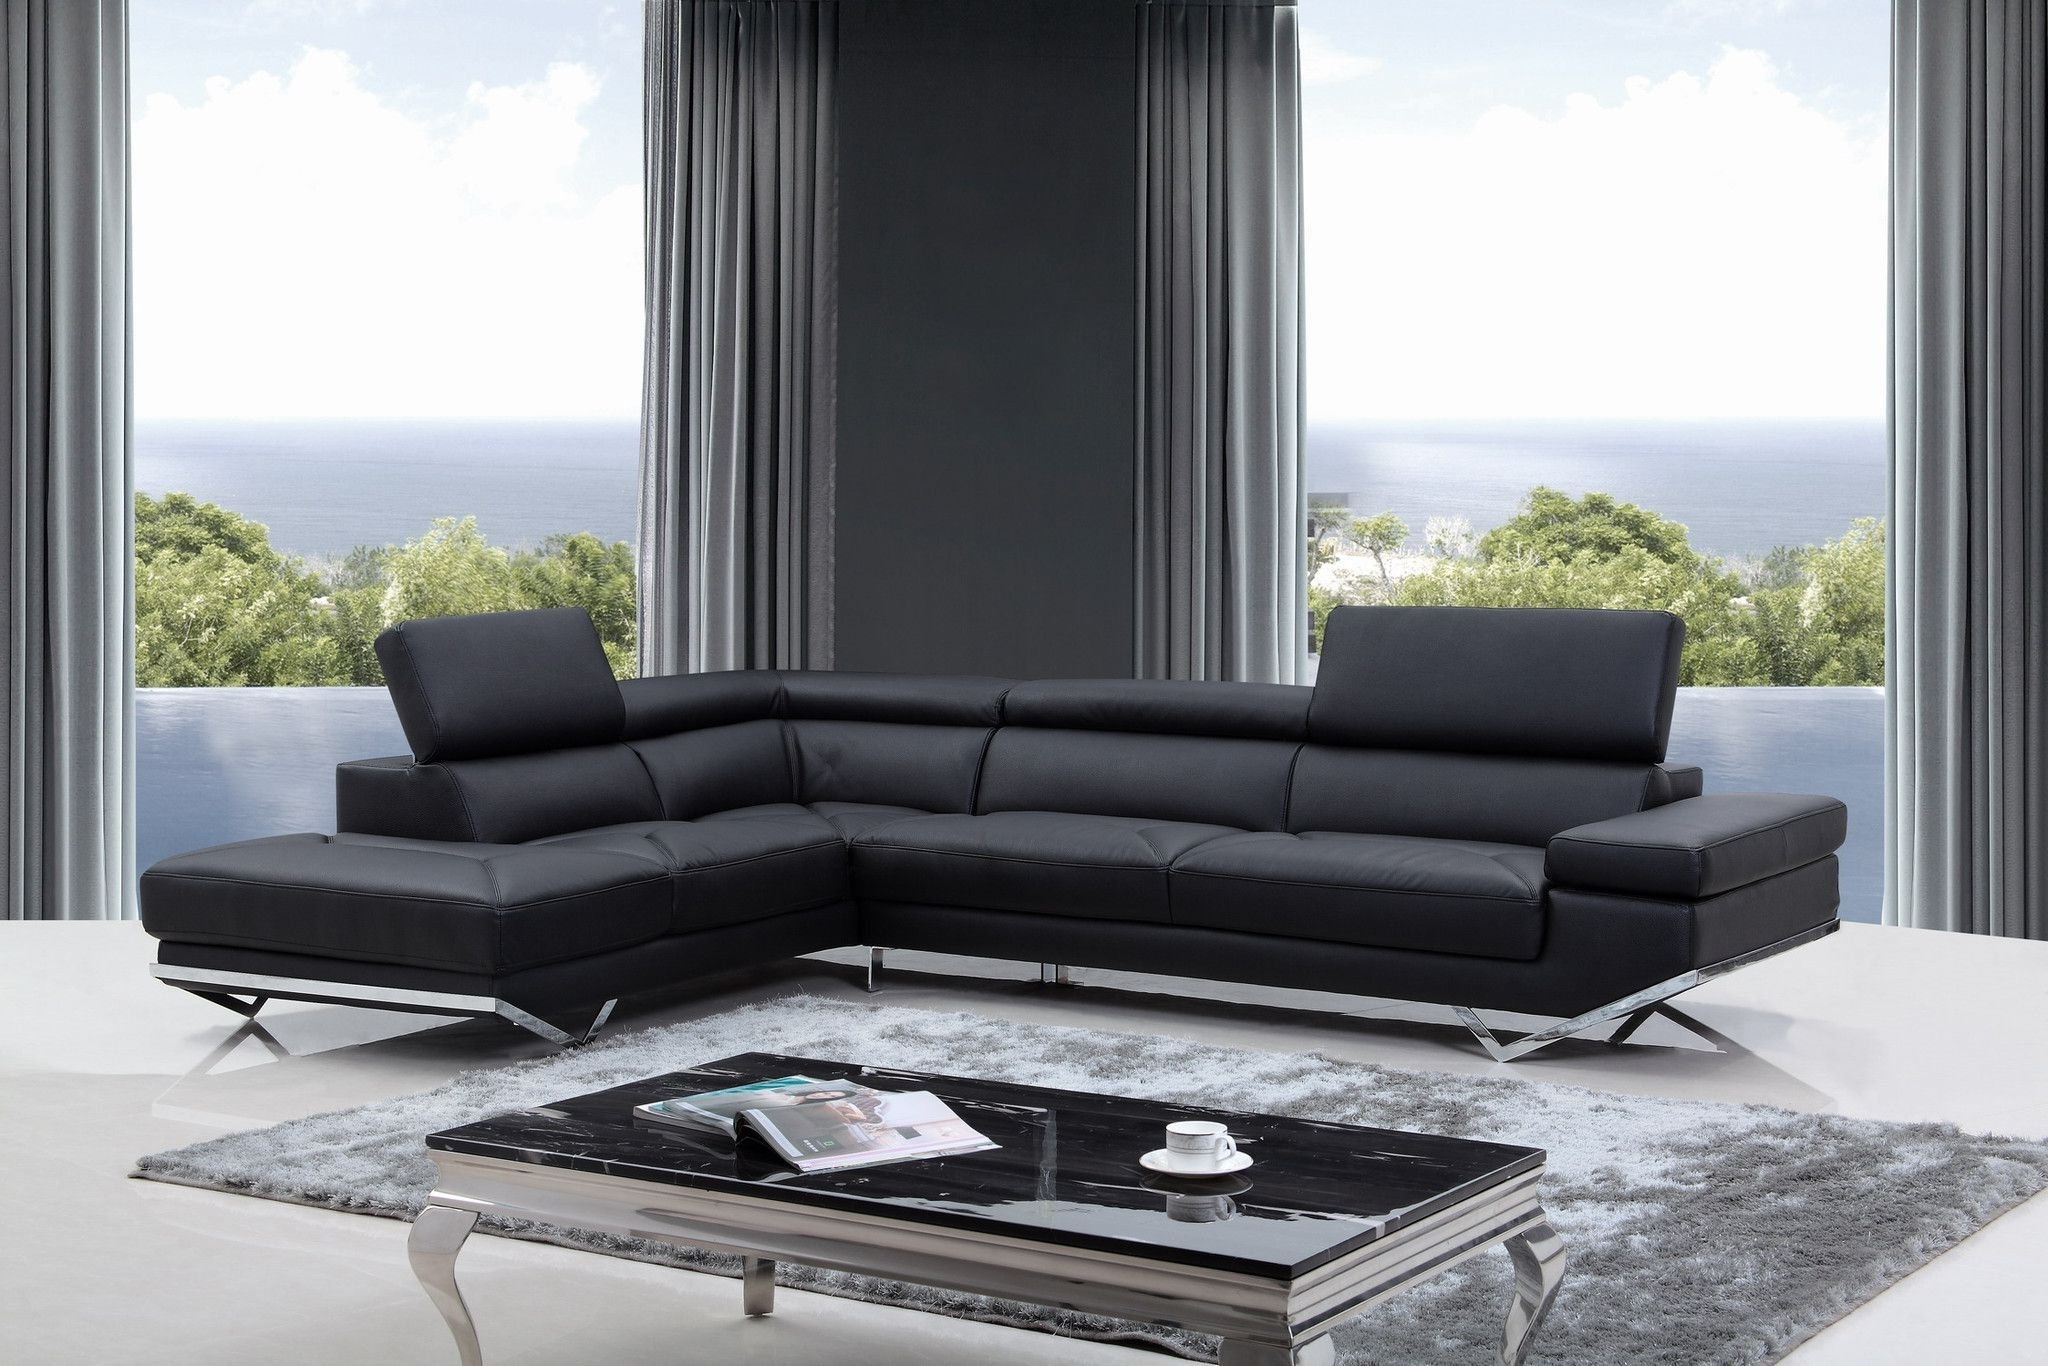 Most Popular Quebec Sectional Sofas Intended For Divani Casa Quebec Modern Black Eco Leather Sectional Sofa (View 6 of 20)